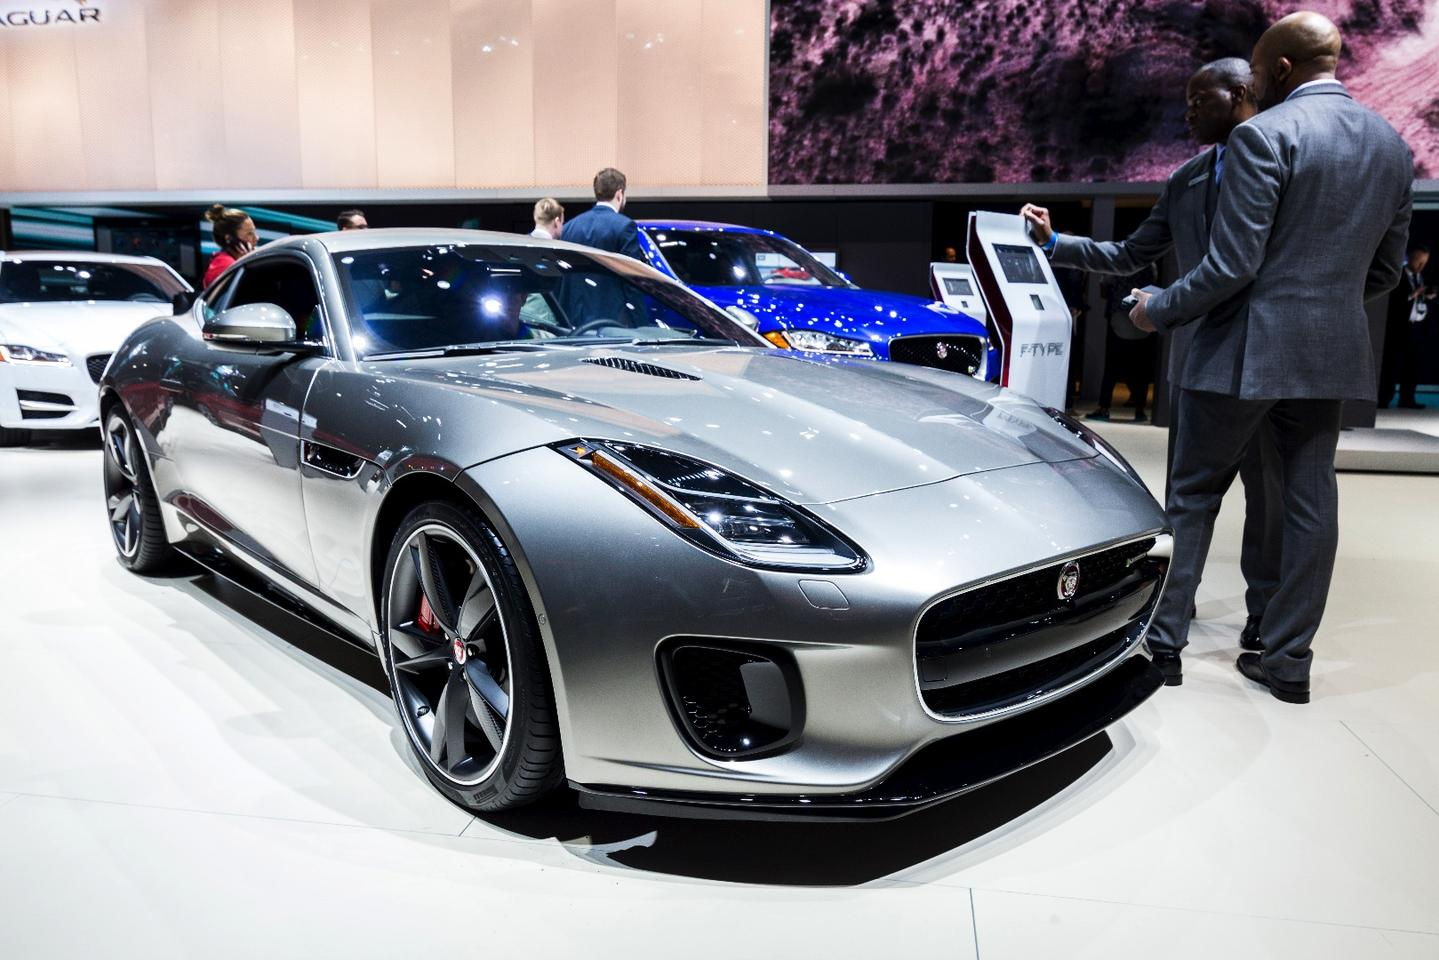 Jaguar shows the 2018 F-Type four-cylinder at the 2017 New York Auto Show